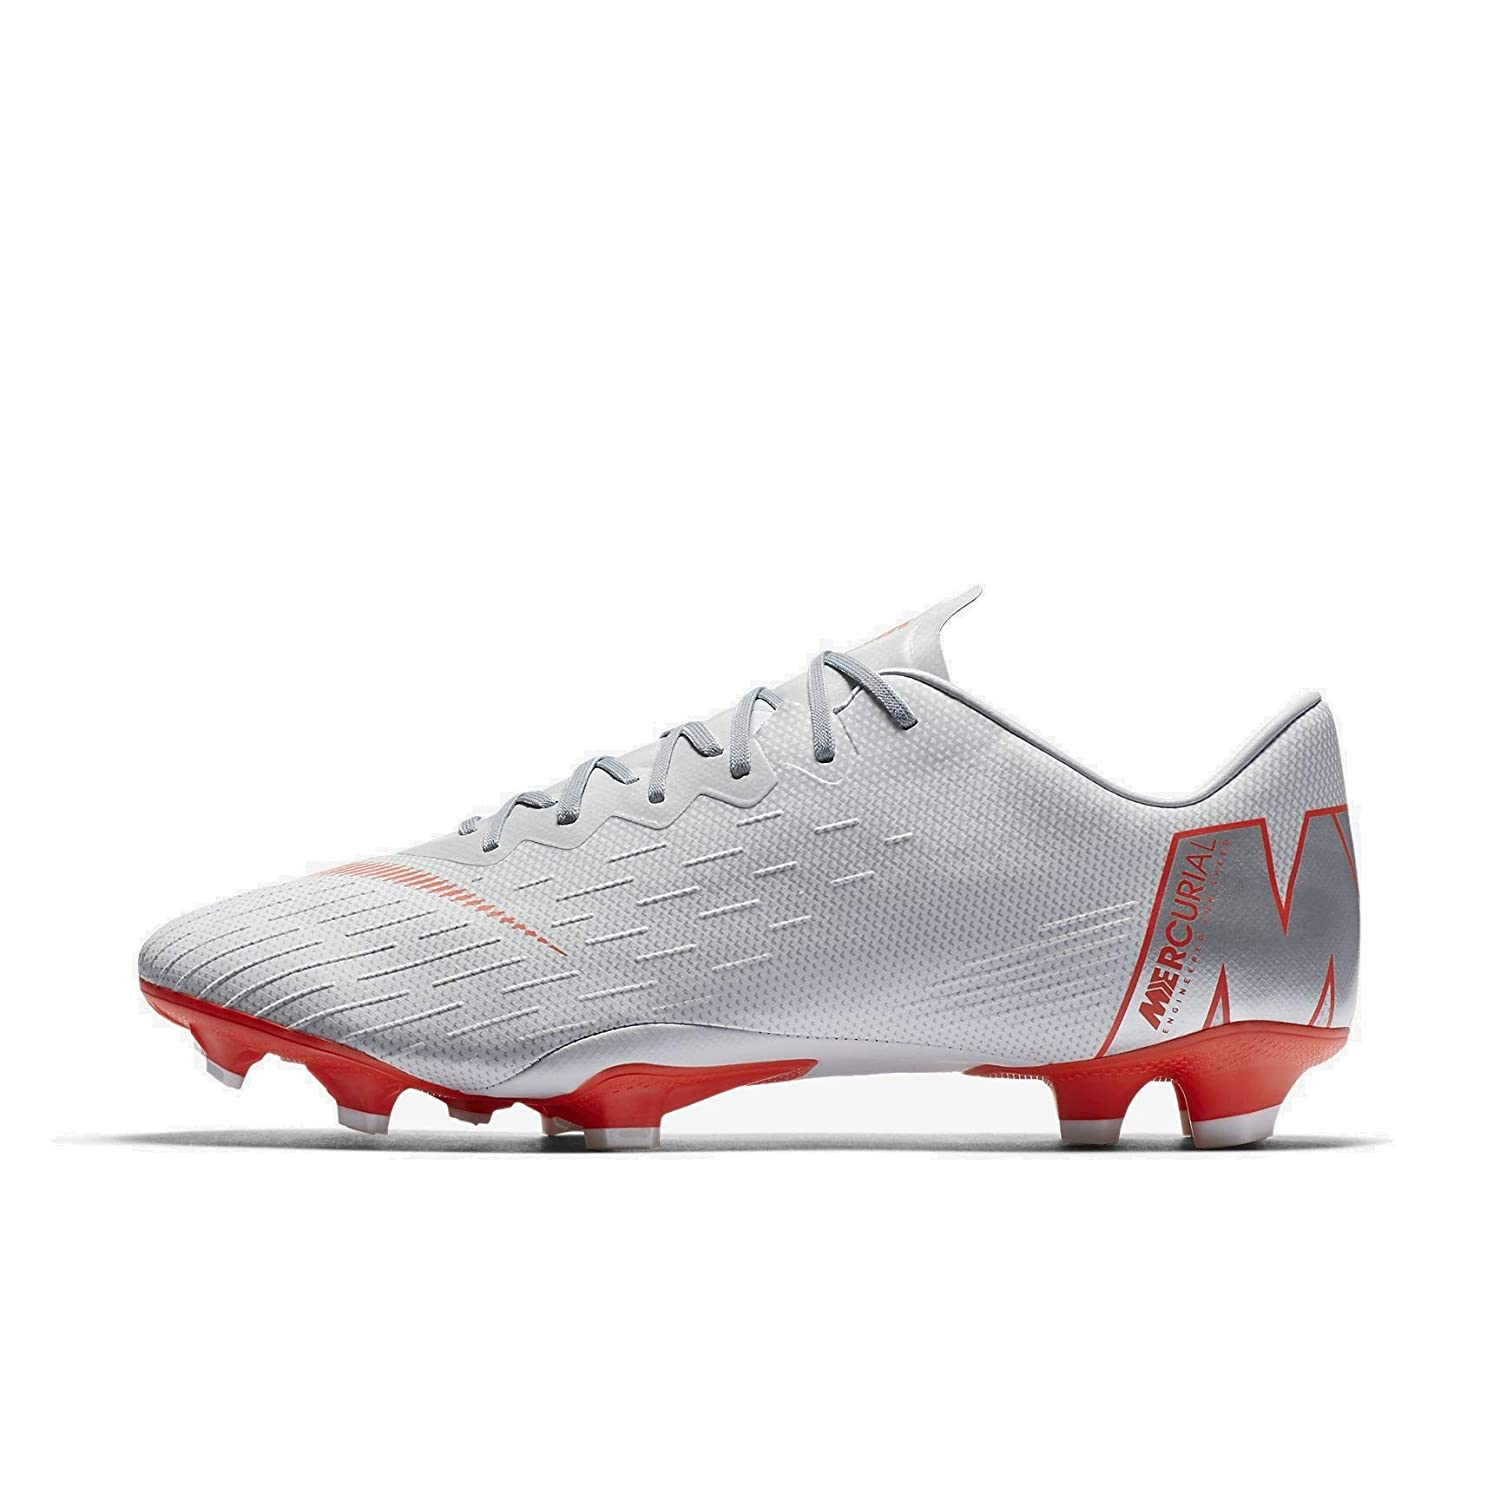 dd5dbcca9afd Amazon.com | Nike Mercurial Vapor 12 Pro FG Soccer Cleat (Wolf Grey) (Men's  8.5/Women's 10) | Soccer